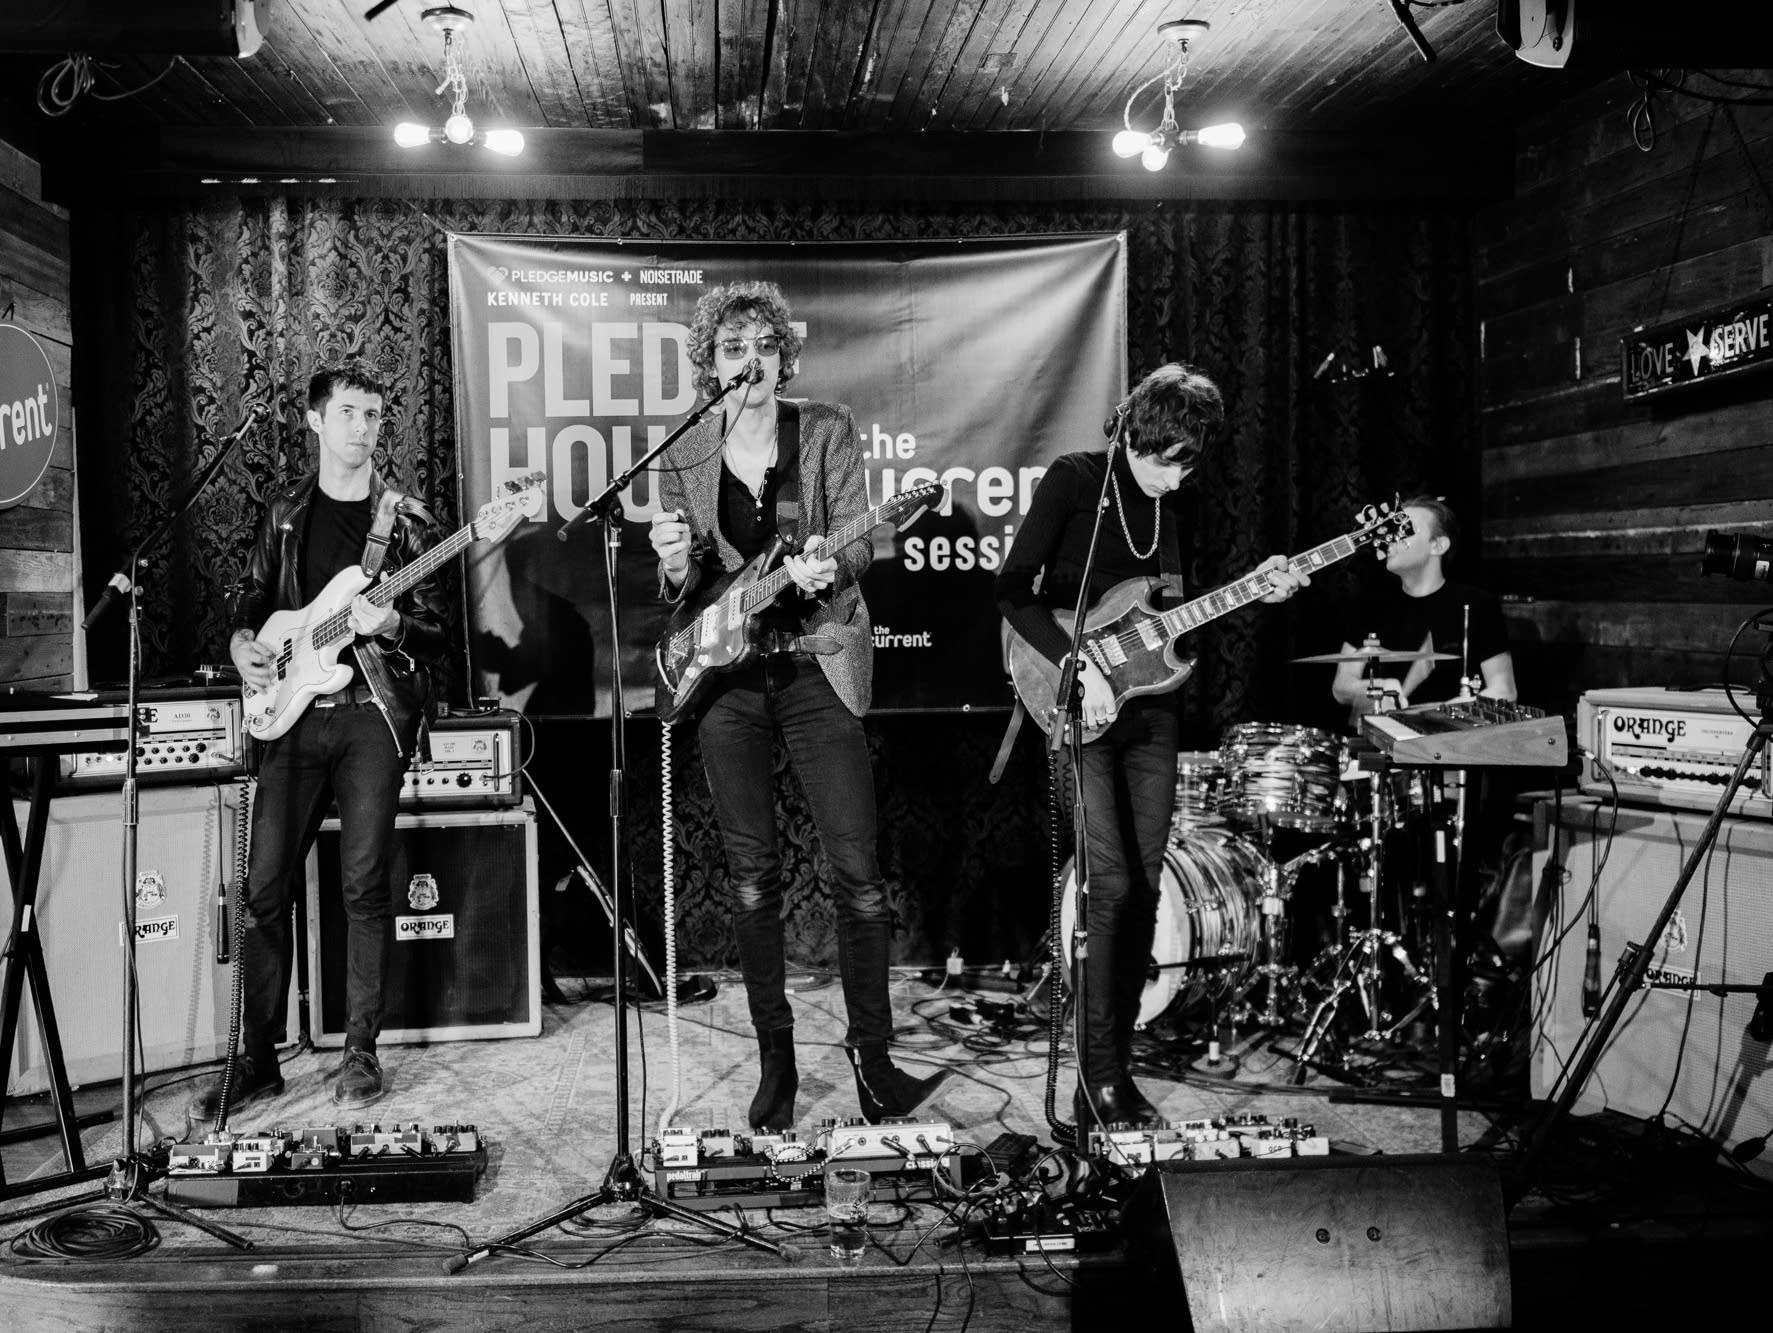 Warbly Jets live at Pledgehouse during SXSW